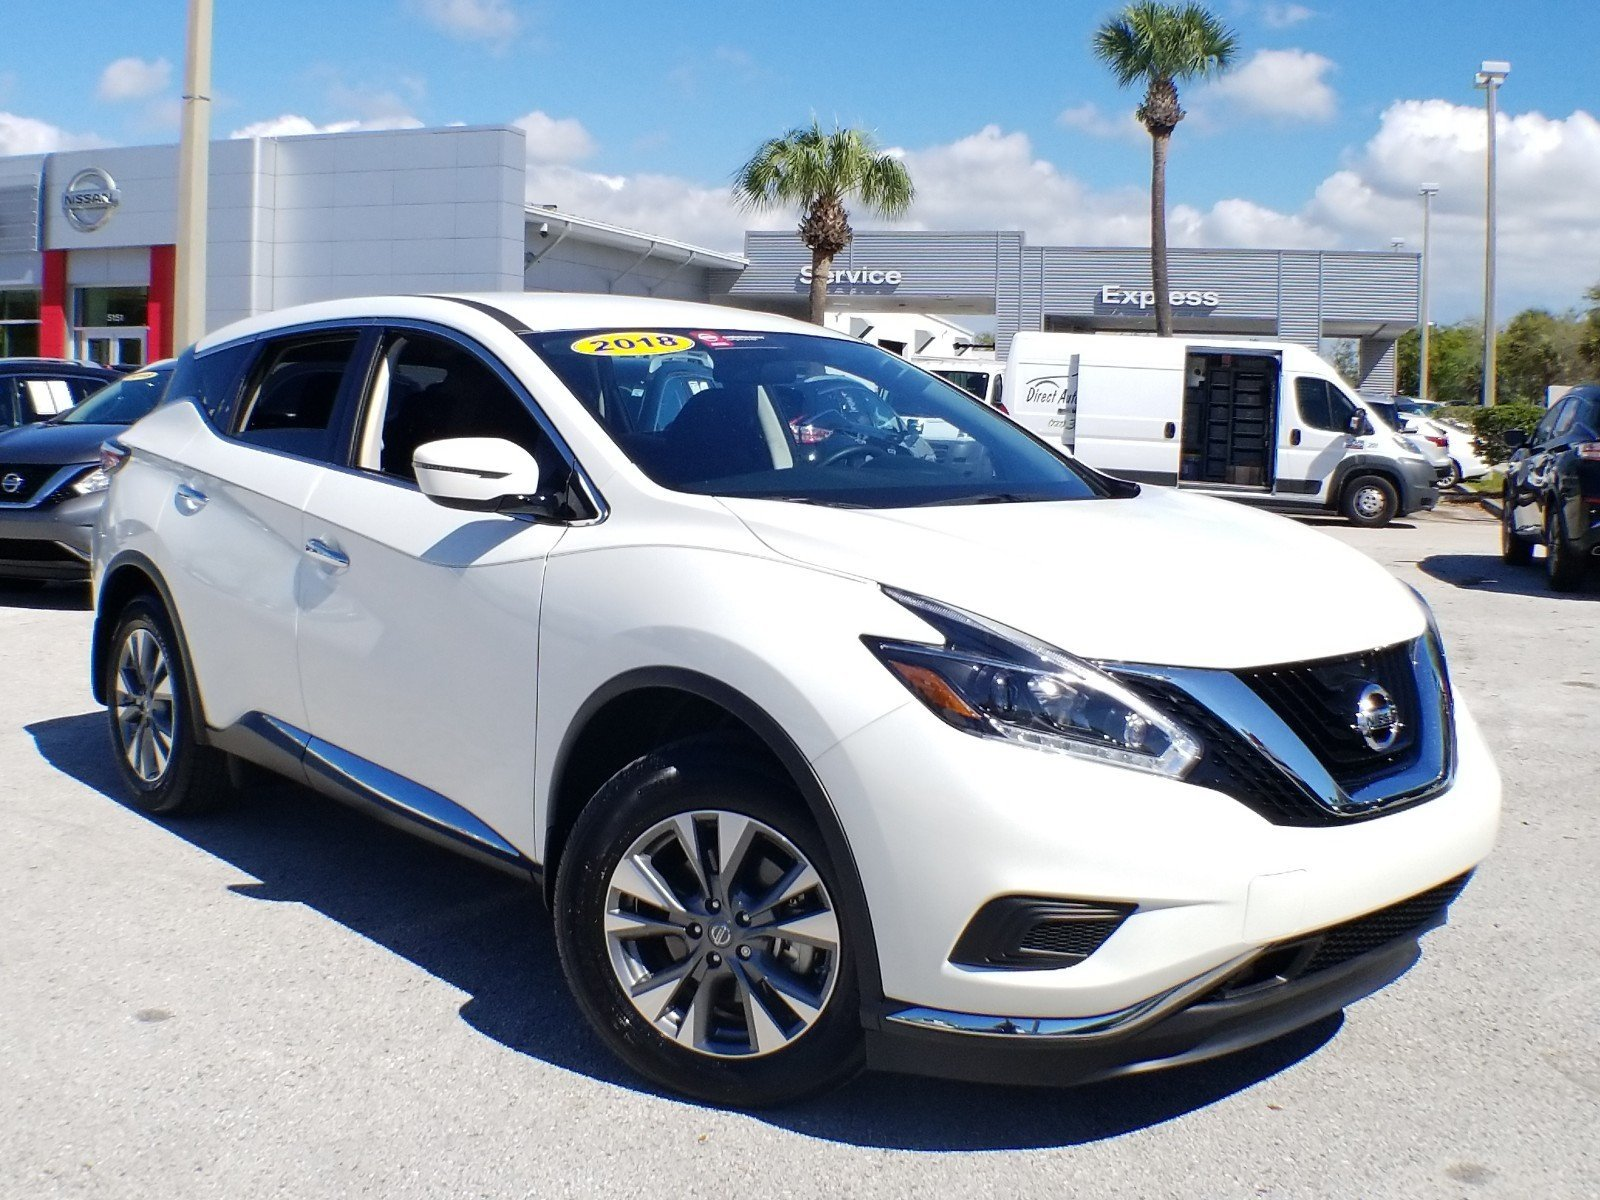 Carfax Used Cars Tampa Lovely 2018 Nissan Murano S Honda Dealer In Tampa Bay Fl – New and Used